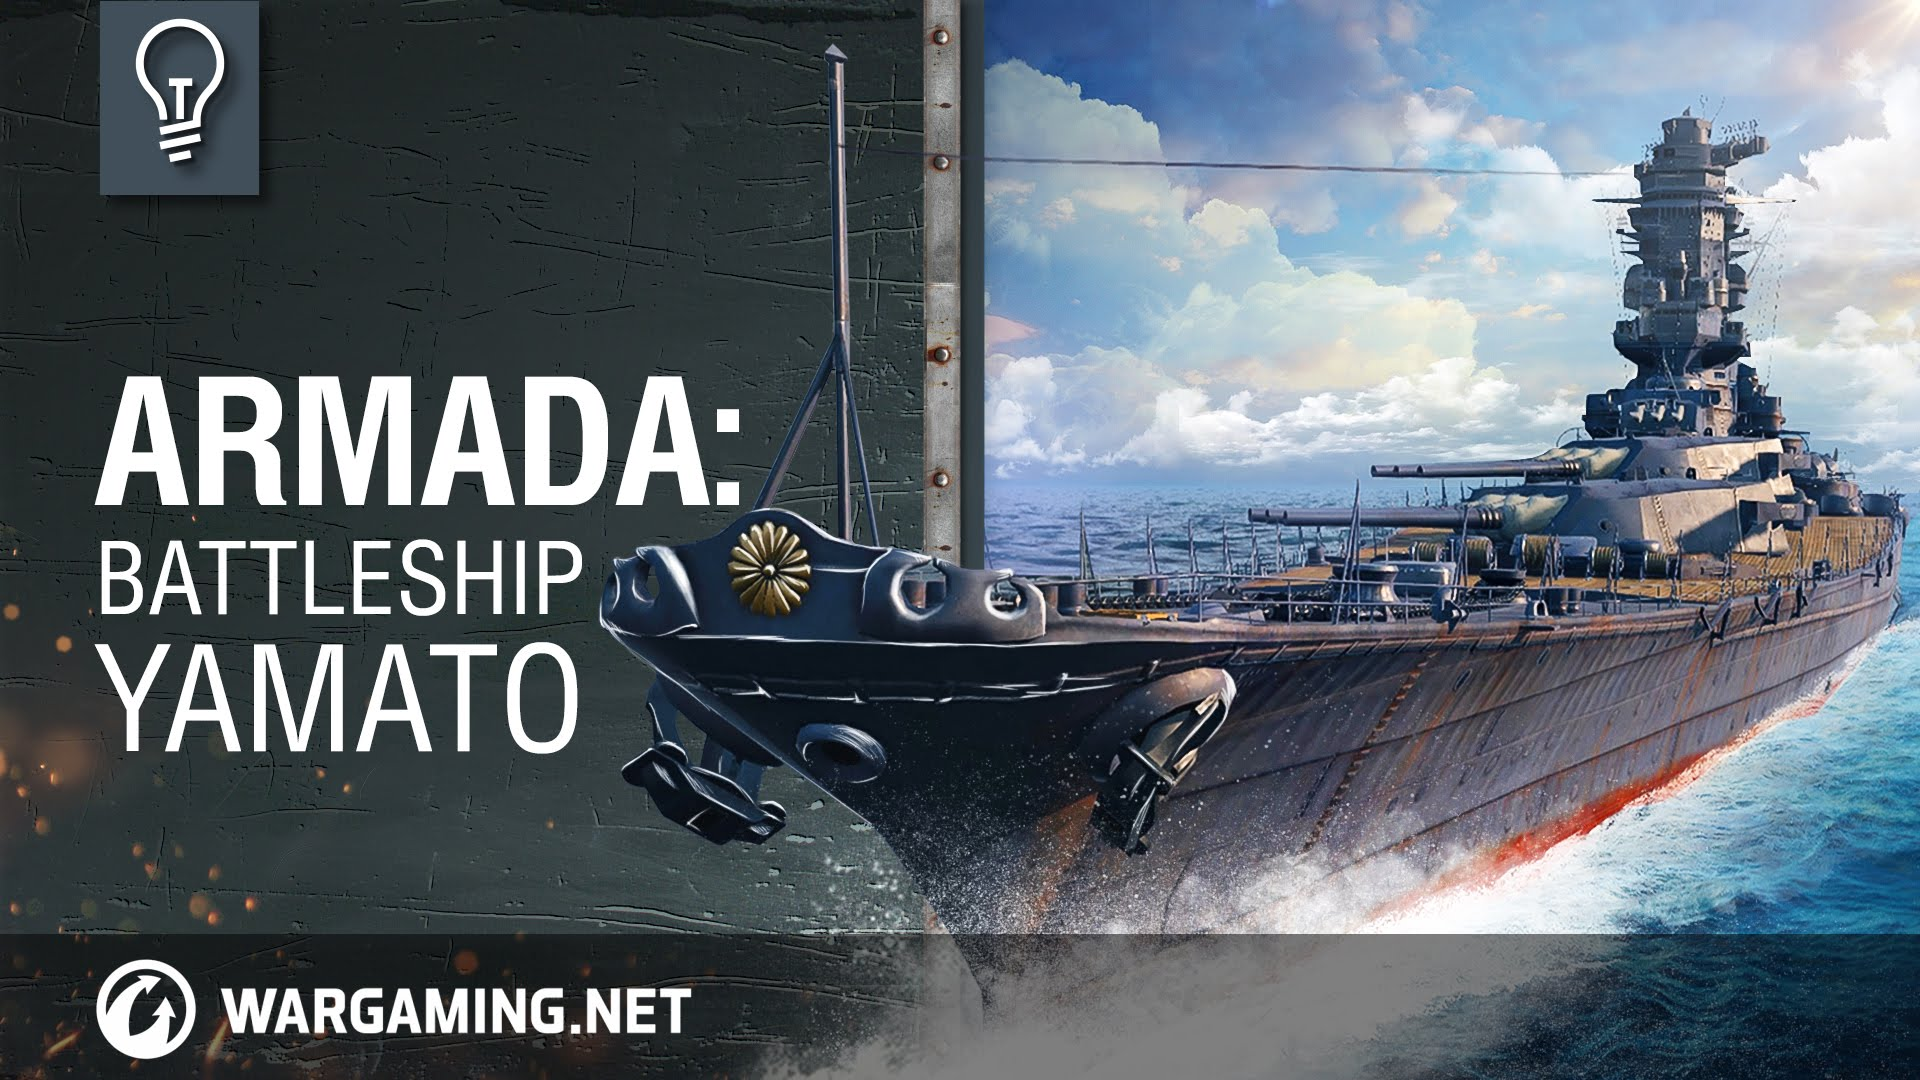 Battleship Yamato Backgrounds on Wallpapers Vista